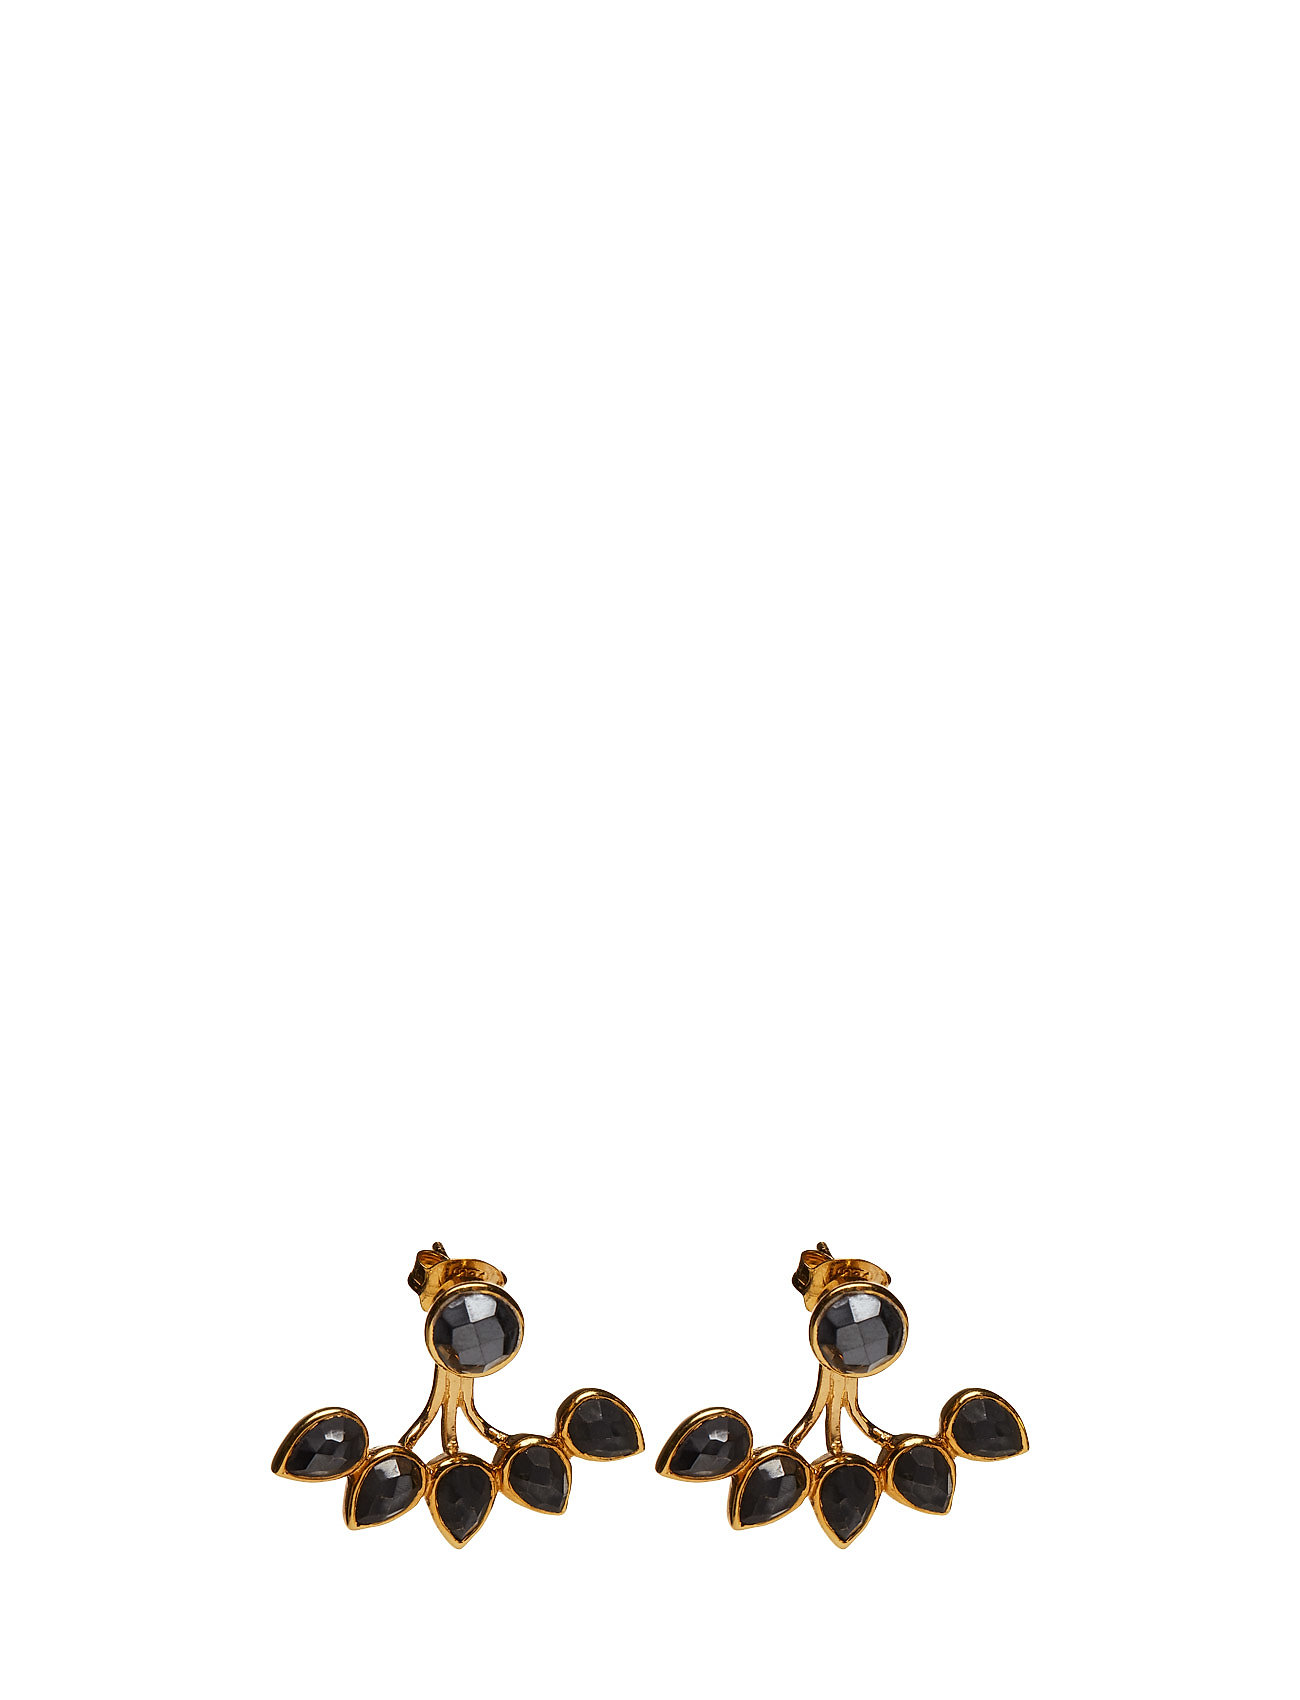 Miss Diva Dropline Earrings Gold Hematite Syster P Accessories til Kvinder i Guld